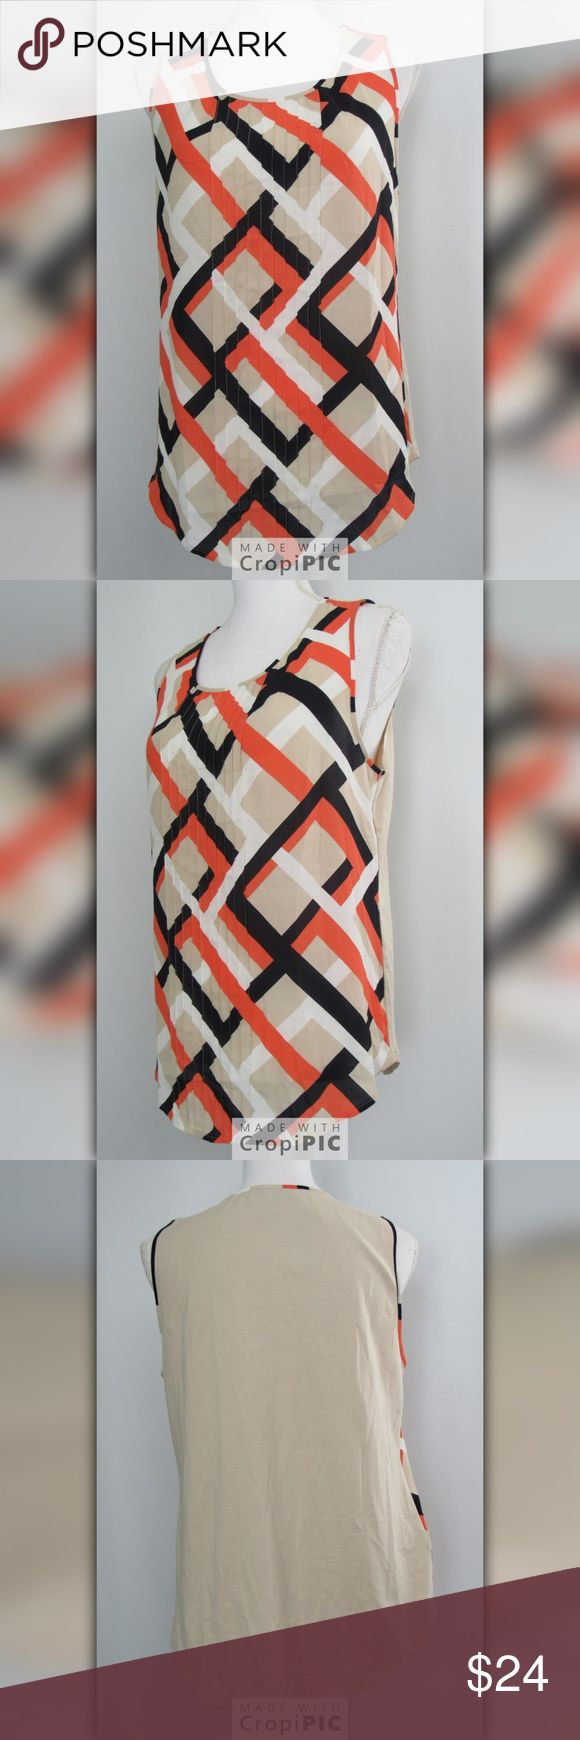 """Ann Taylor Cami tank New Size Medium Ann Taylor Womens Medium New Sleeveless Camisole Tank top $54 Nwt Orange Black  Approximate Measurements (measured laying flat and in-stretched) • Armpit to armpit: 18"""" inches • Hips flat: 21"""" inches • Length from shoulder to very bottom: 26"""" inches  Shipping Your order will be on its way to you within 1 business day of receiving payment  (Monday-Friday). Ann Taylor Tops Camisoles"""